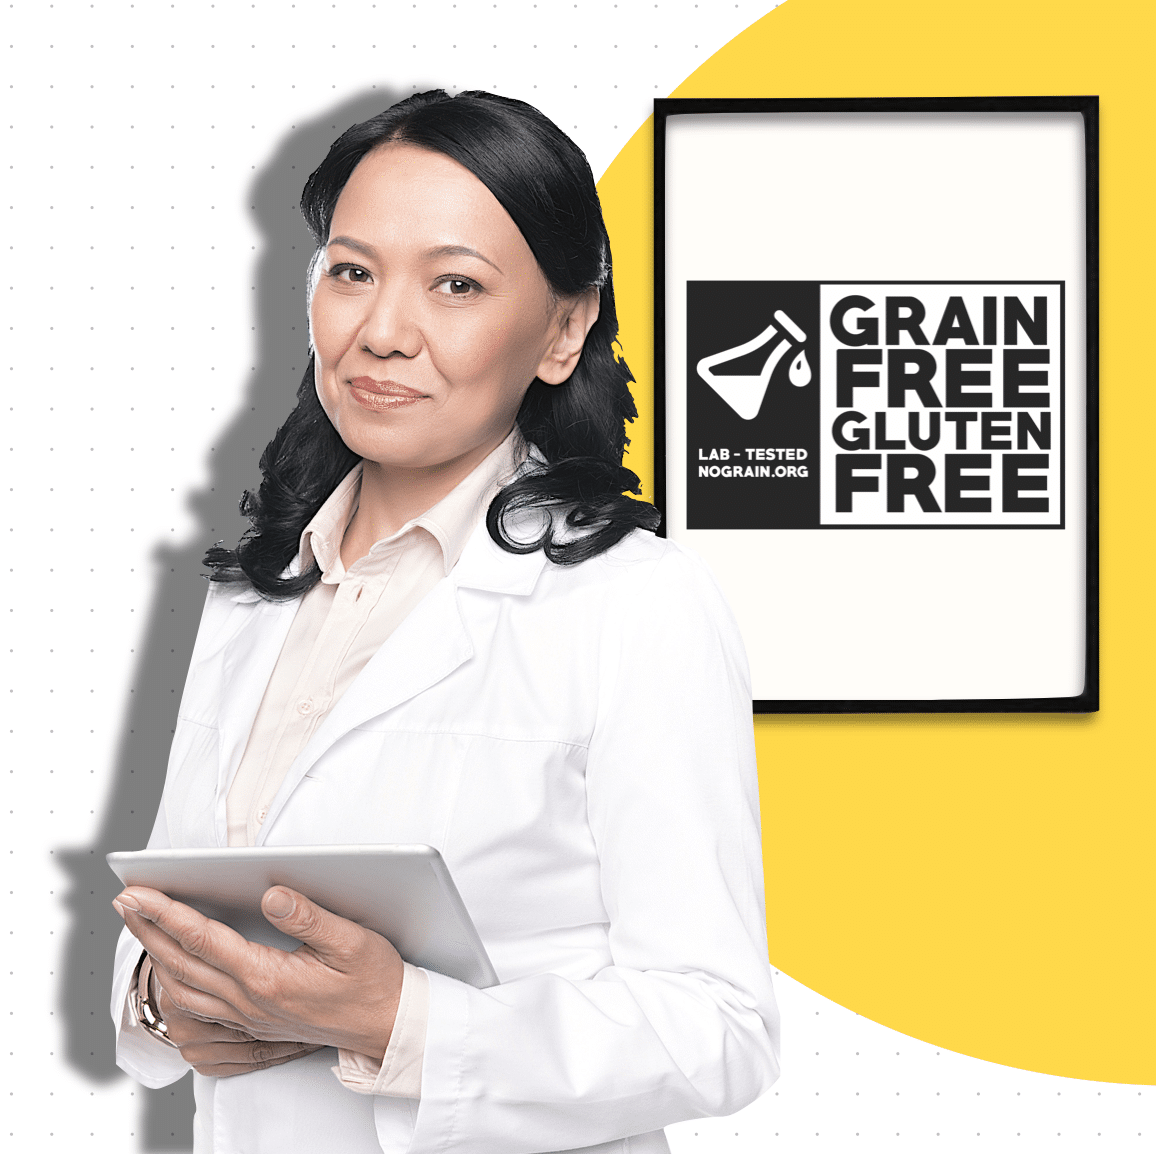 Grain Free Gluten Free Certification Application